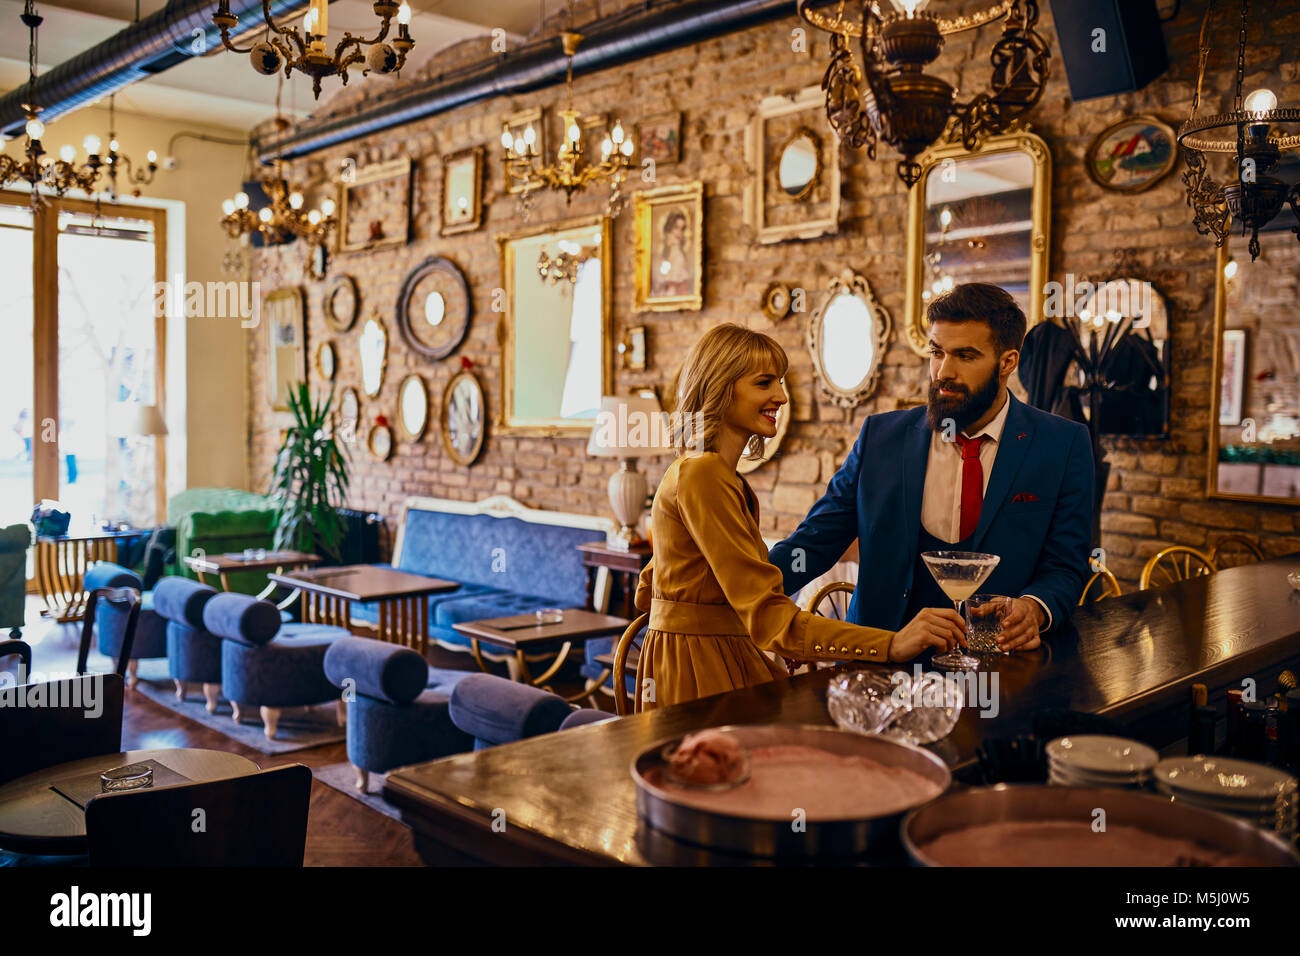 Elegant couple having a drink in a bar - Stock Image